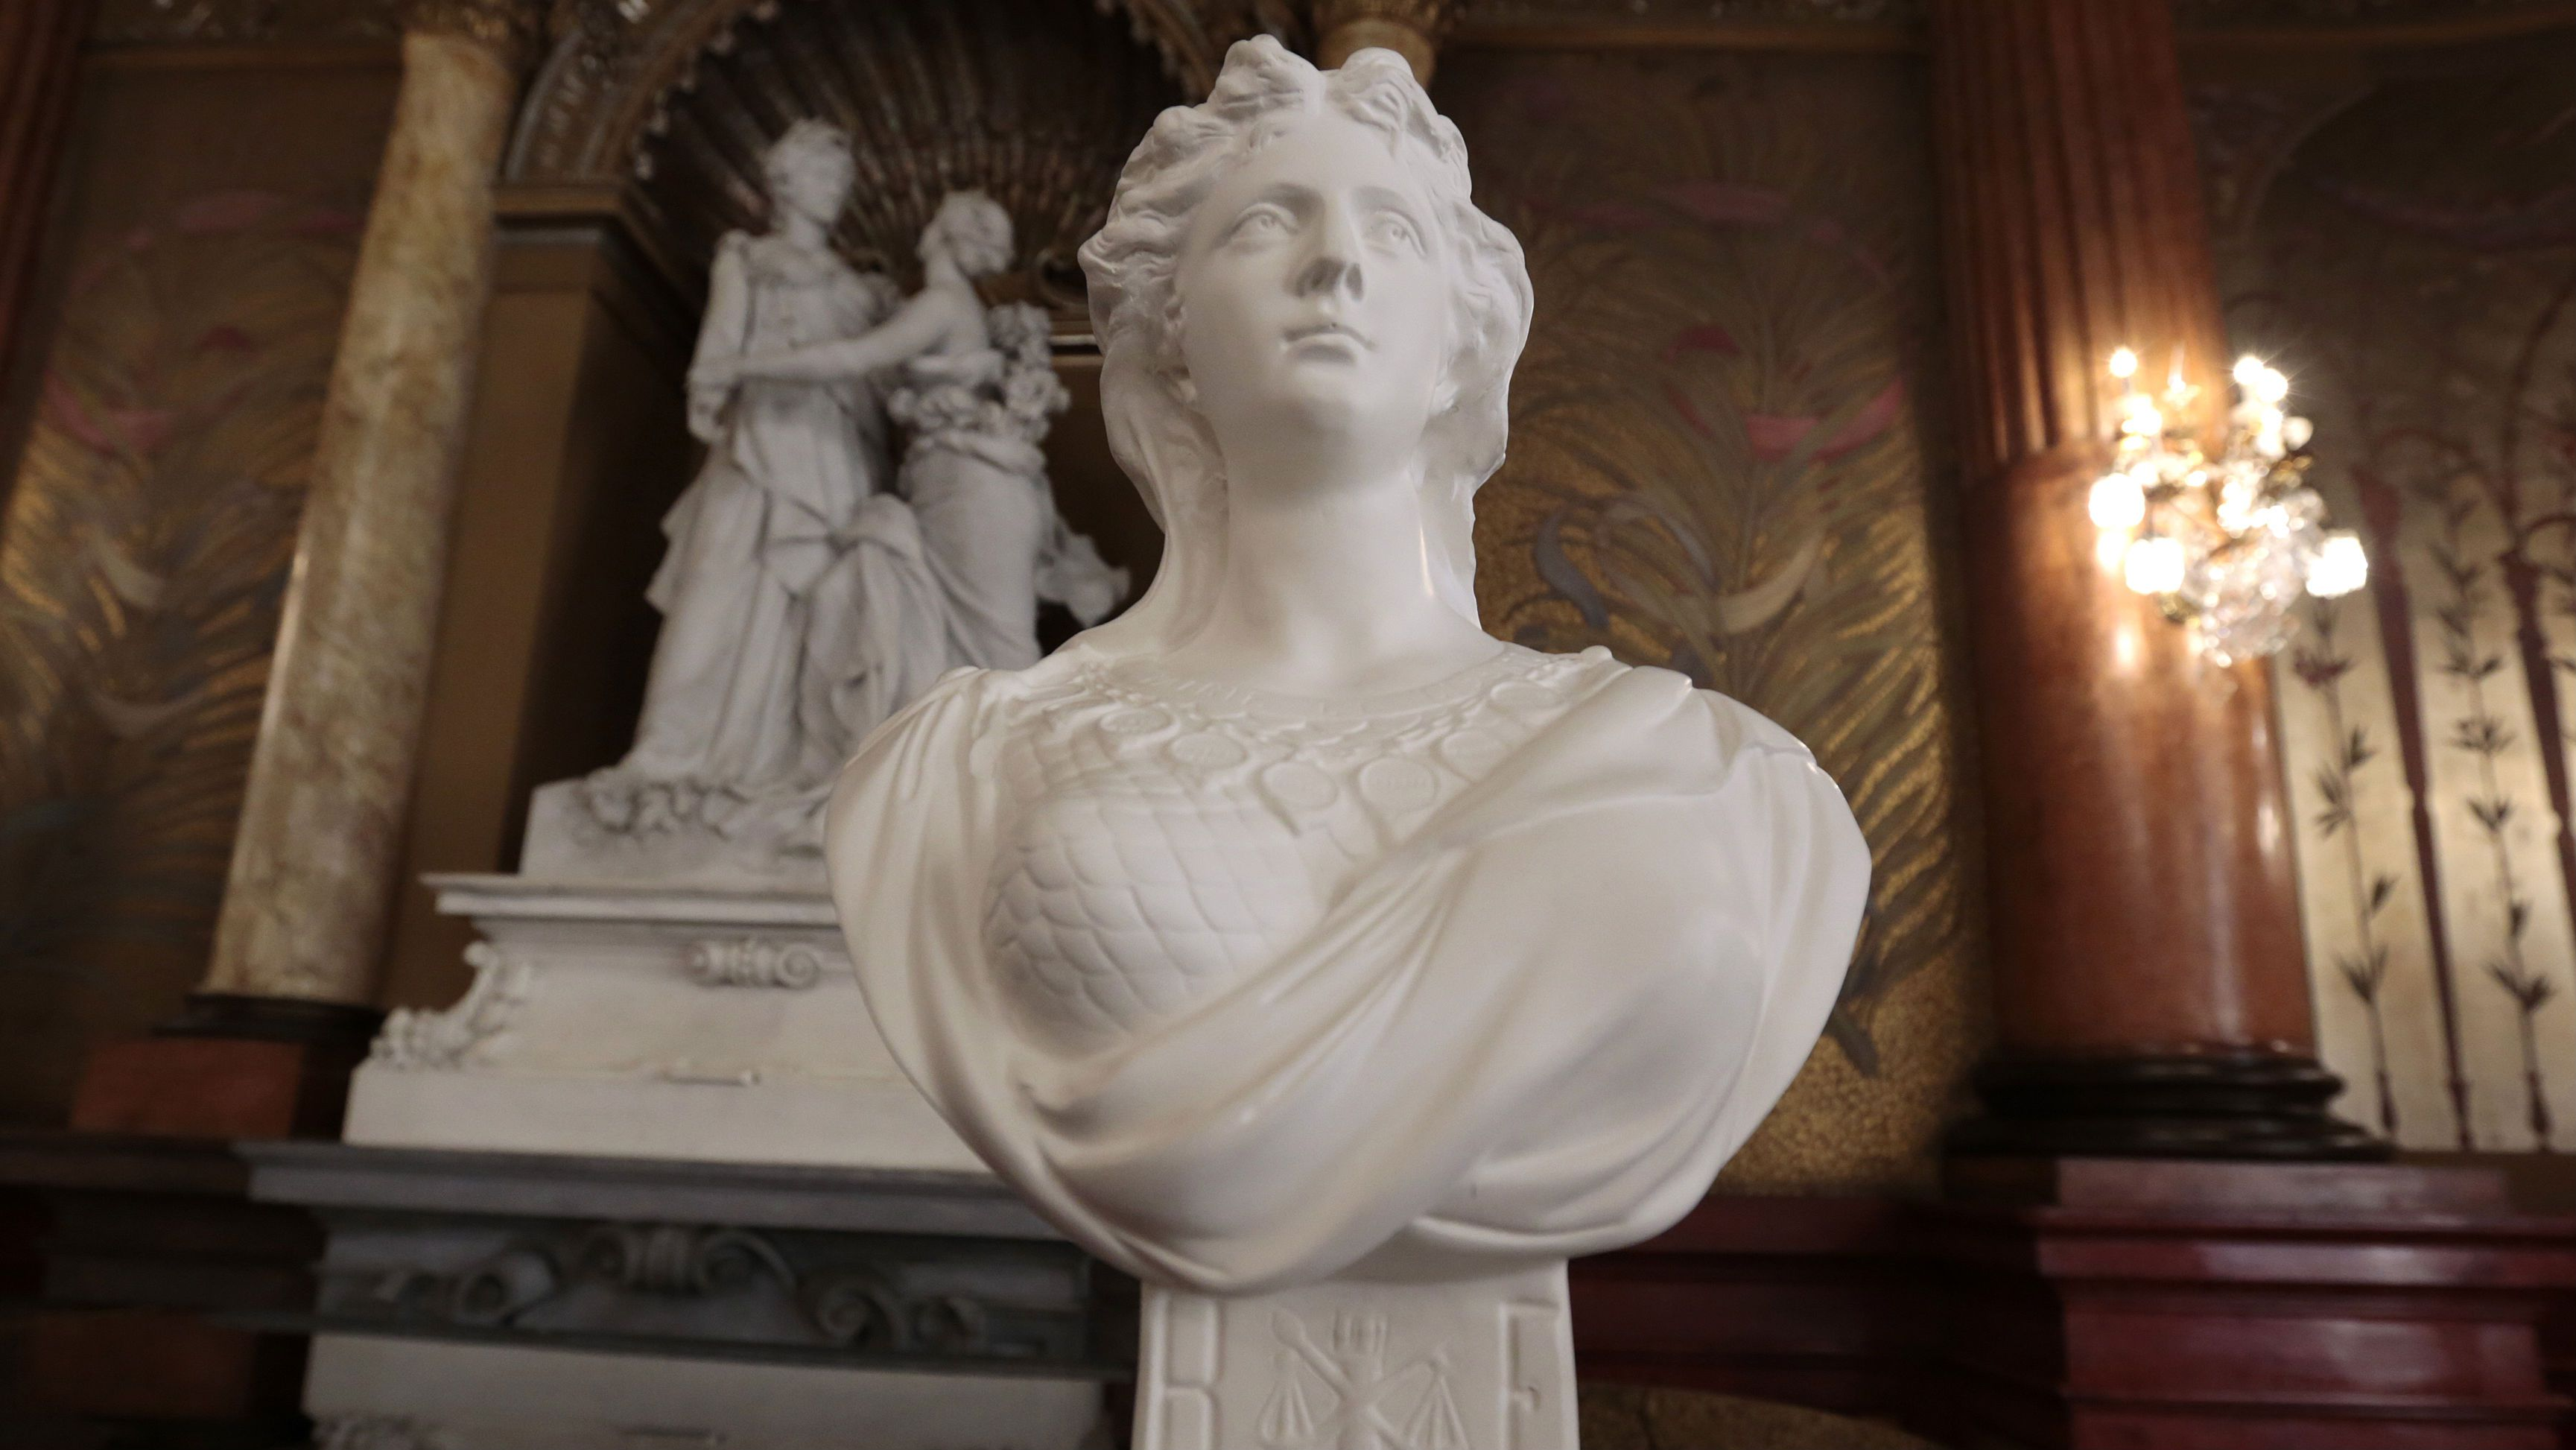 """A """"Marianne"""" bust, the symbol of the French Republic, is seen at the Prefectoral Palace during a """"Citizenship Welcome Ceremony"""" in Nice, October 3, 2014. REUTERS/Eric Gaillard (FRANCE - Tags: POLITICS SOCIETY)"""